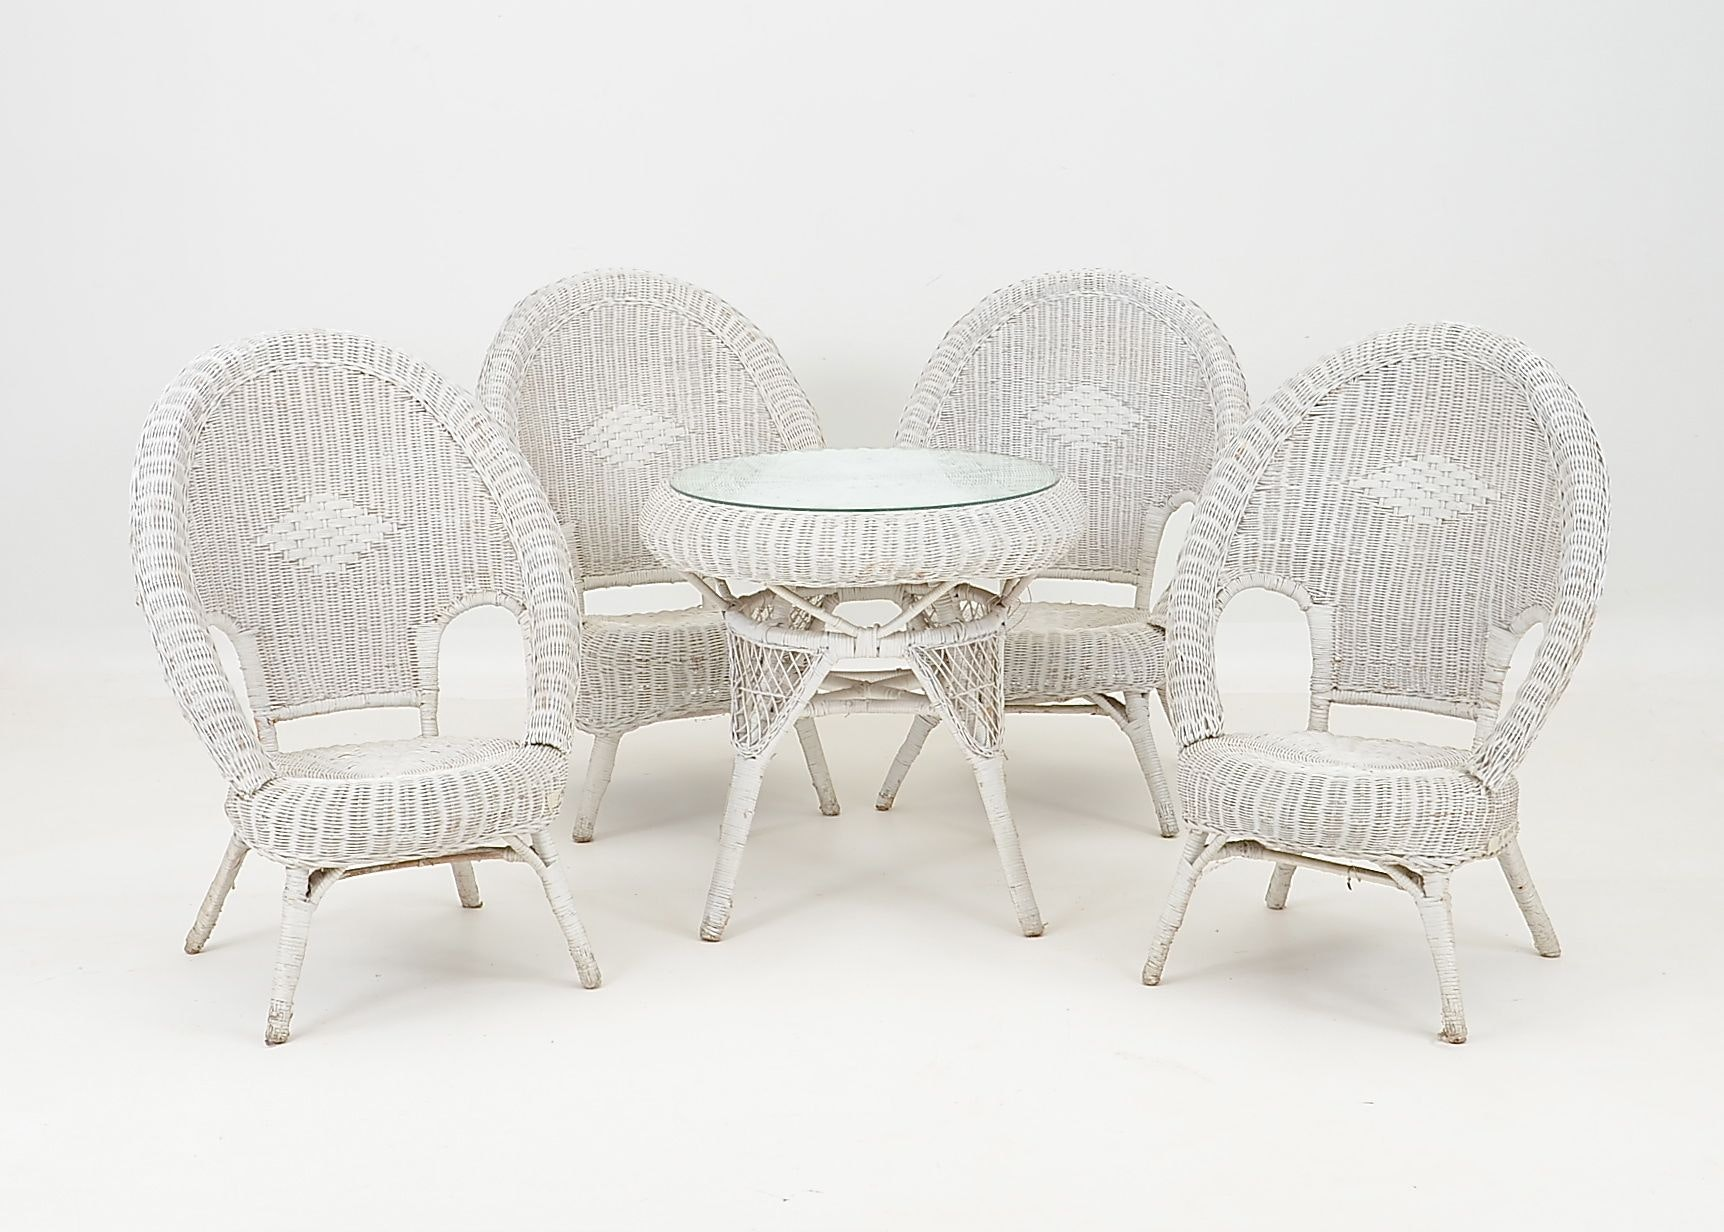 Vintage White Wicker Table And Chairs